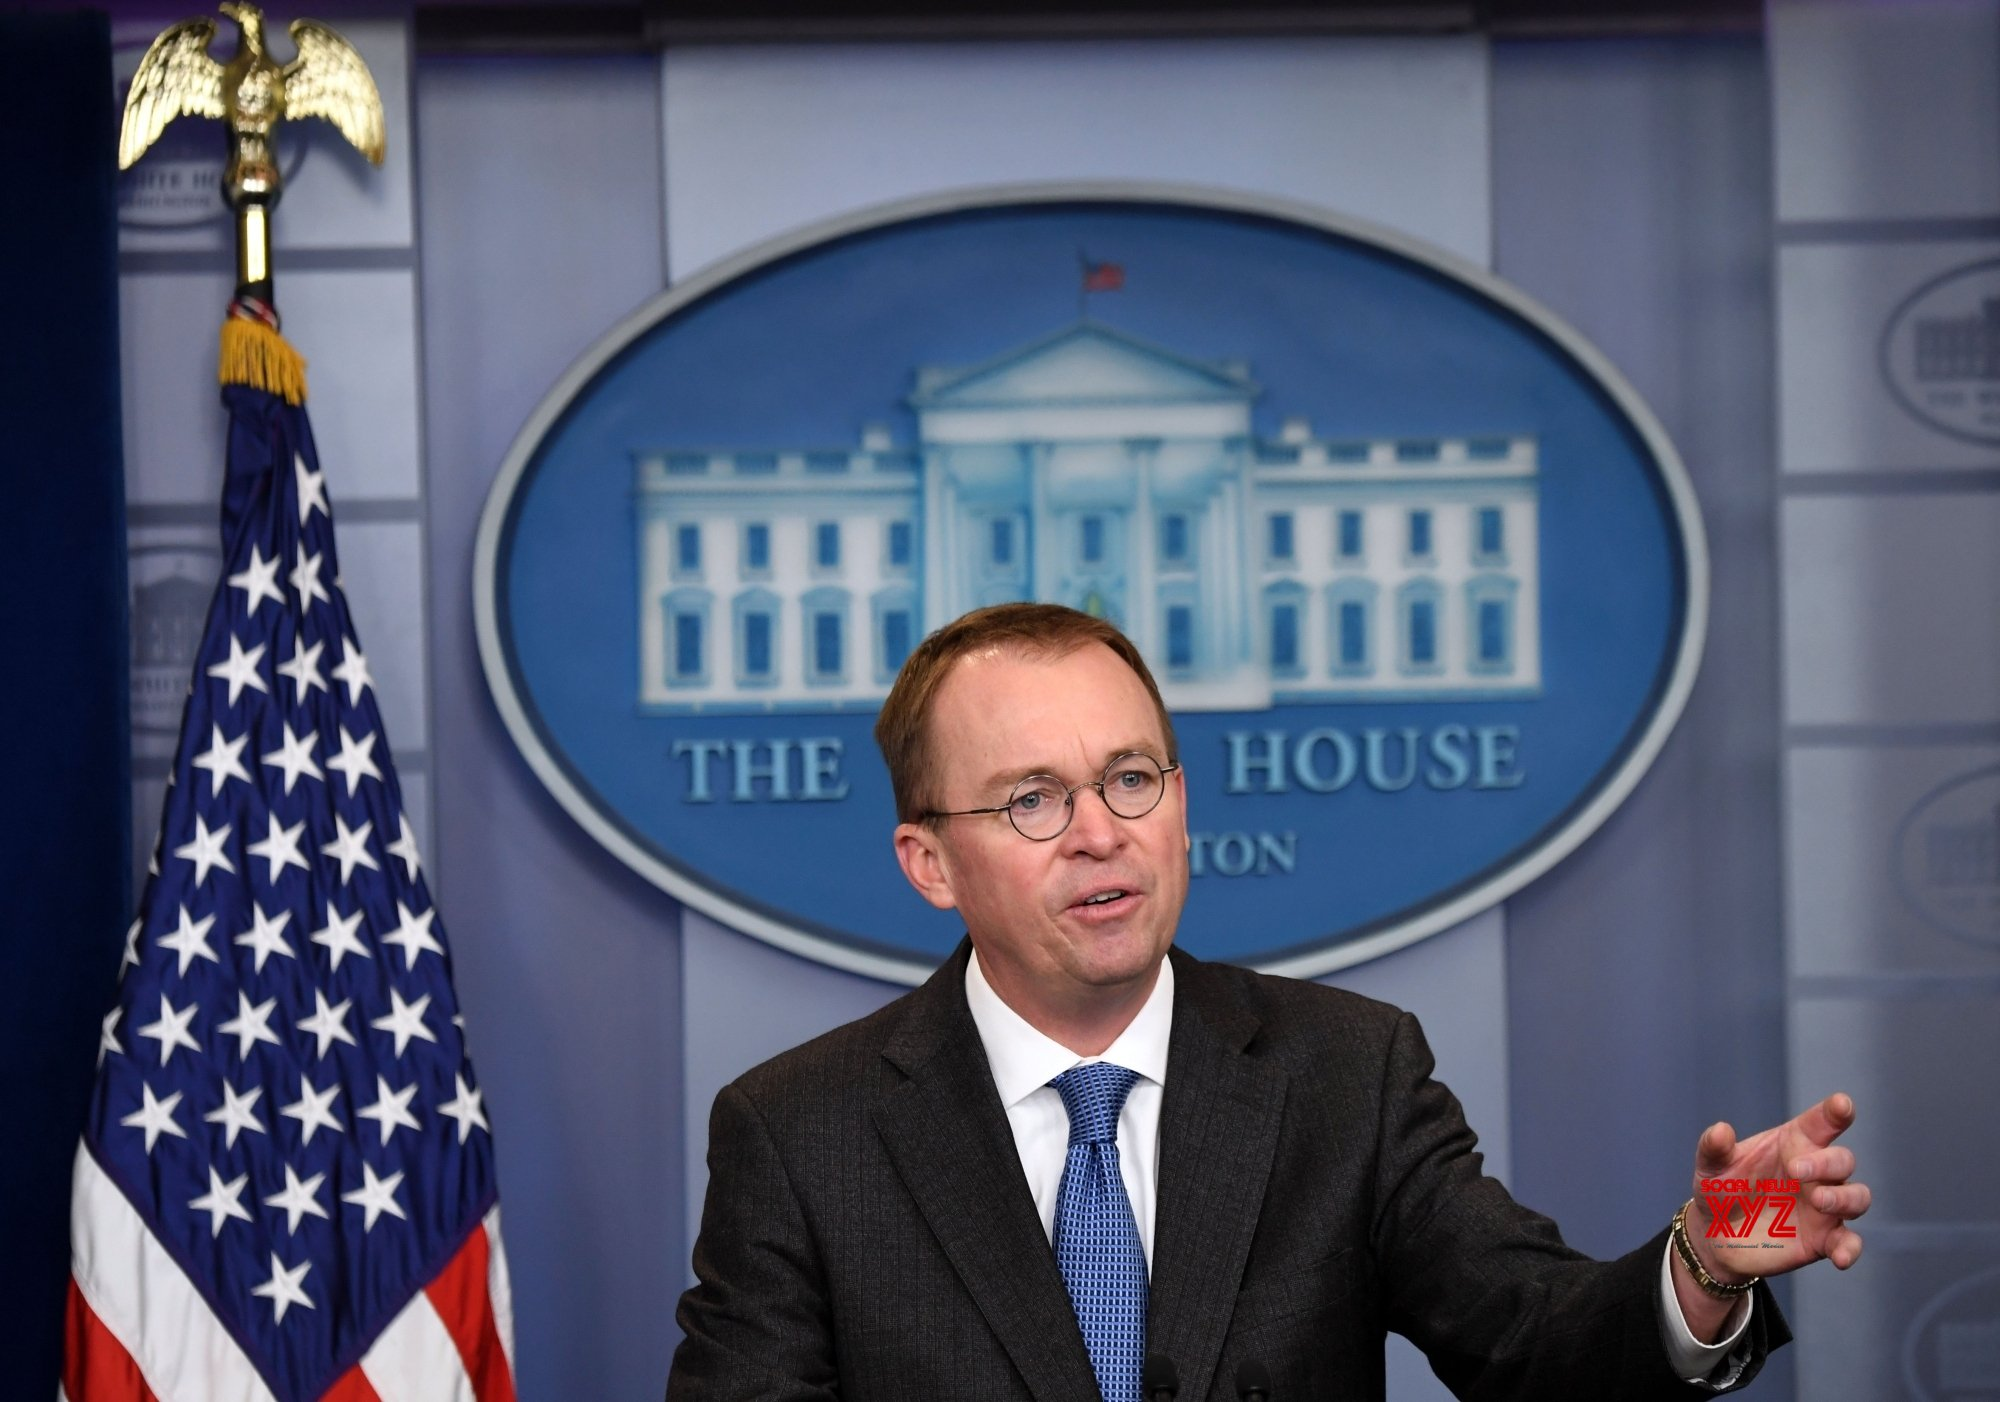 Mick Mulvaney blames media for 'huge panic' over COVID-19